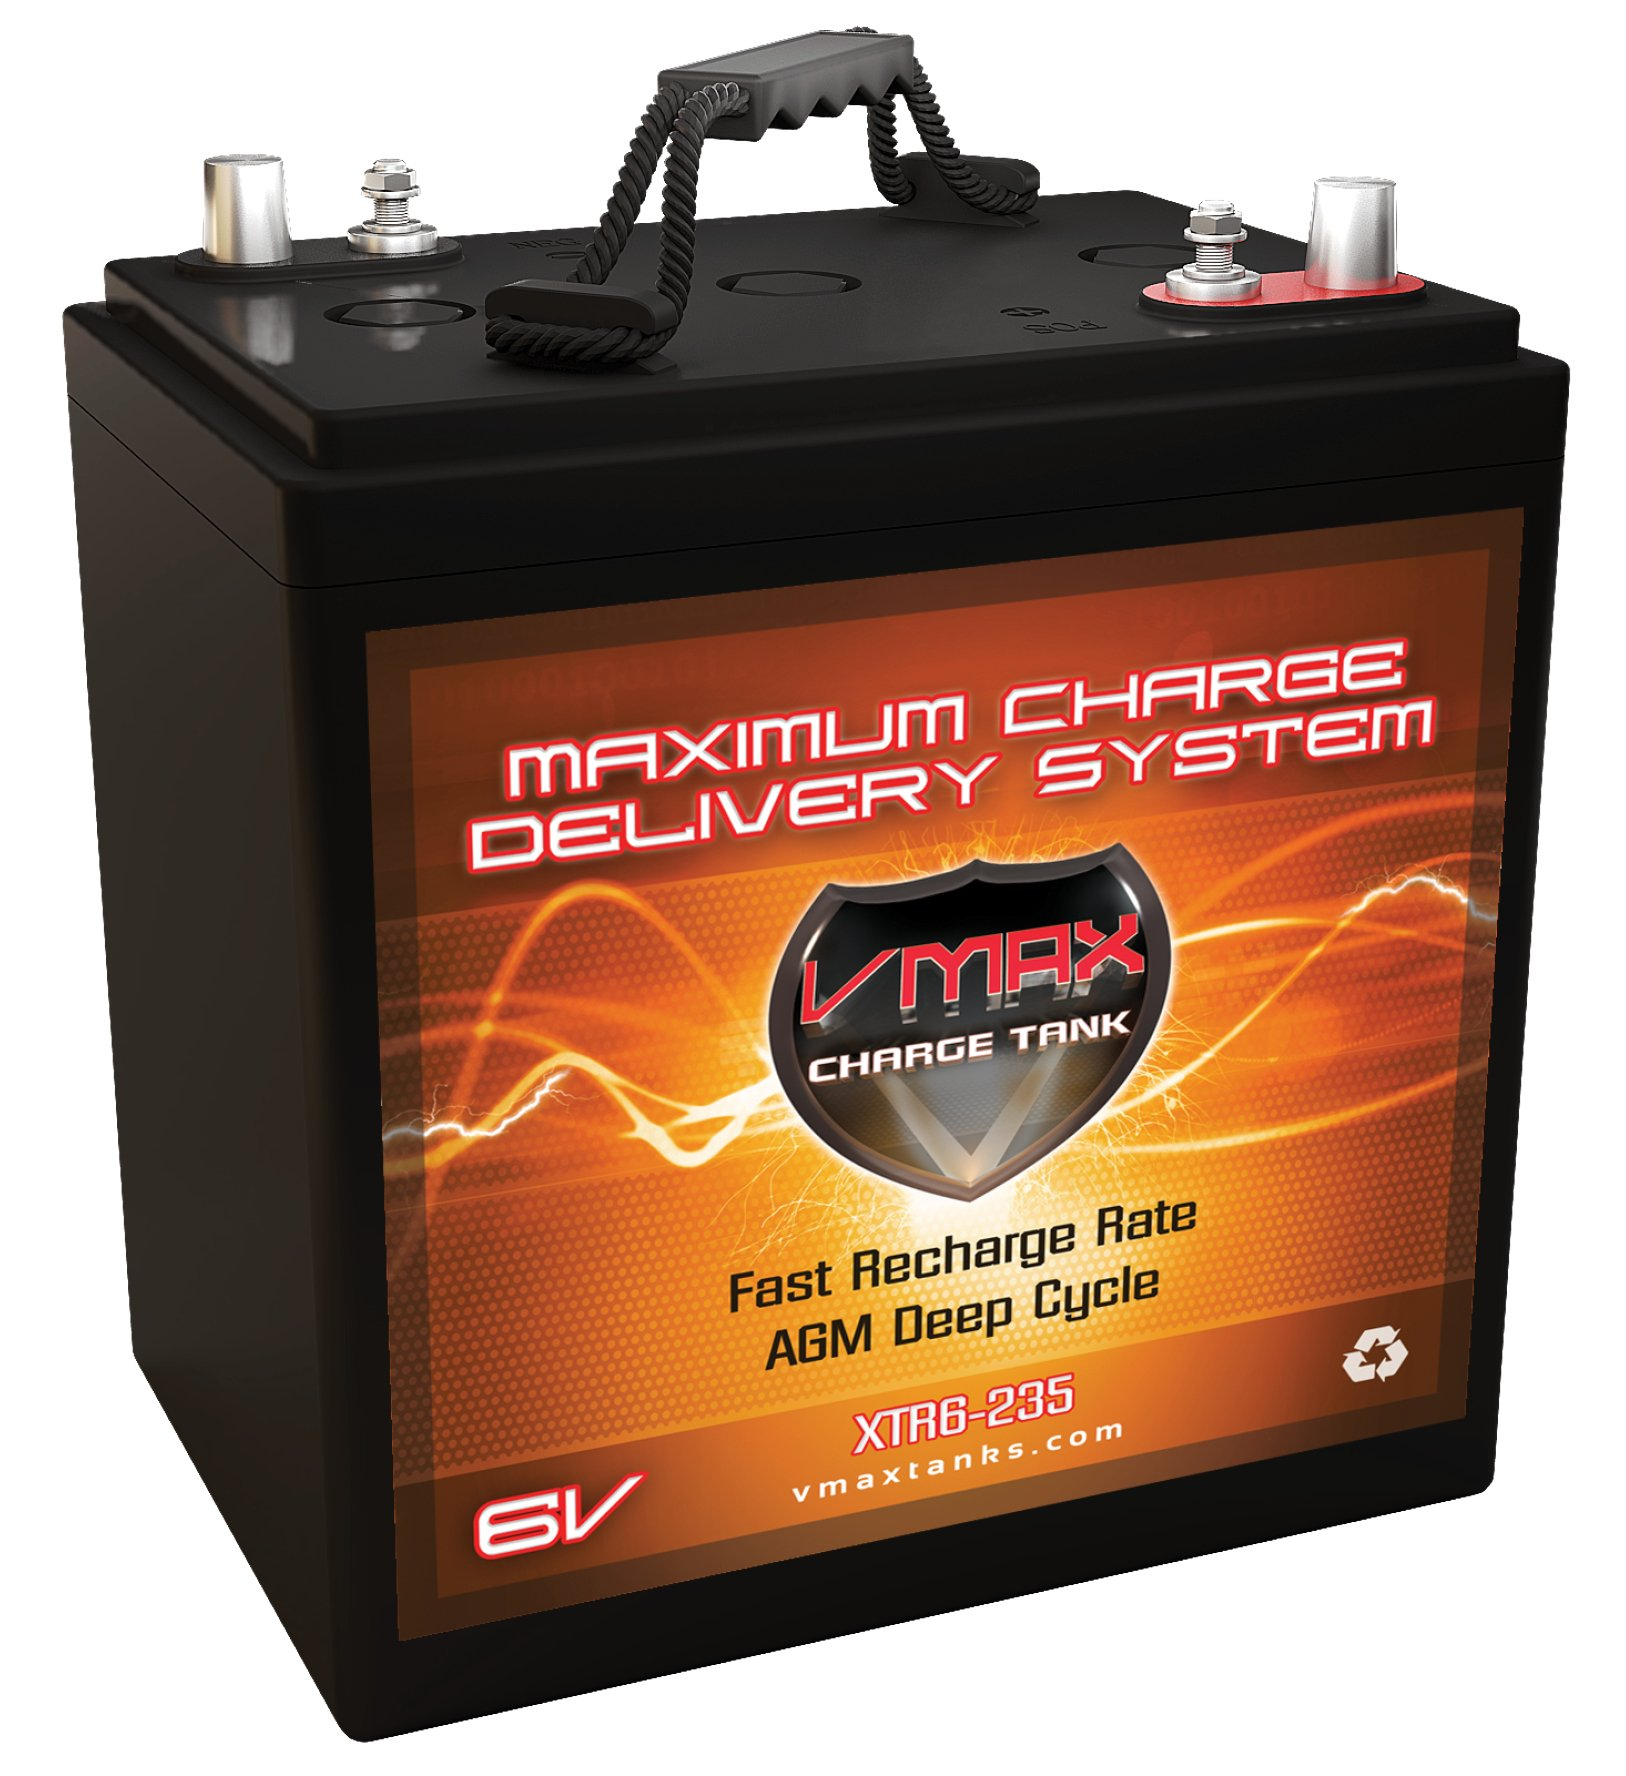 VMAX XTR6-235 6 Volt 235Ah Group GC2 AGM Deep Cycle Sealed Maintenance-Free Battery Replaces/Upgrades Interstate GC2-RD GC2-HD GC2-XHD by VMAX USA